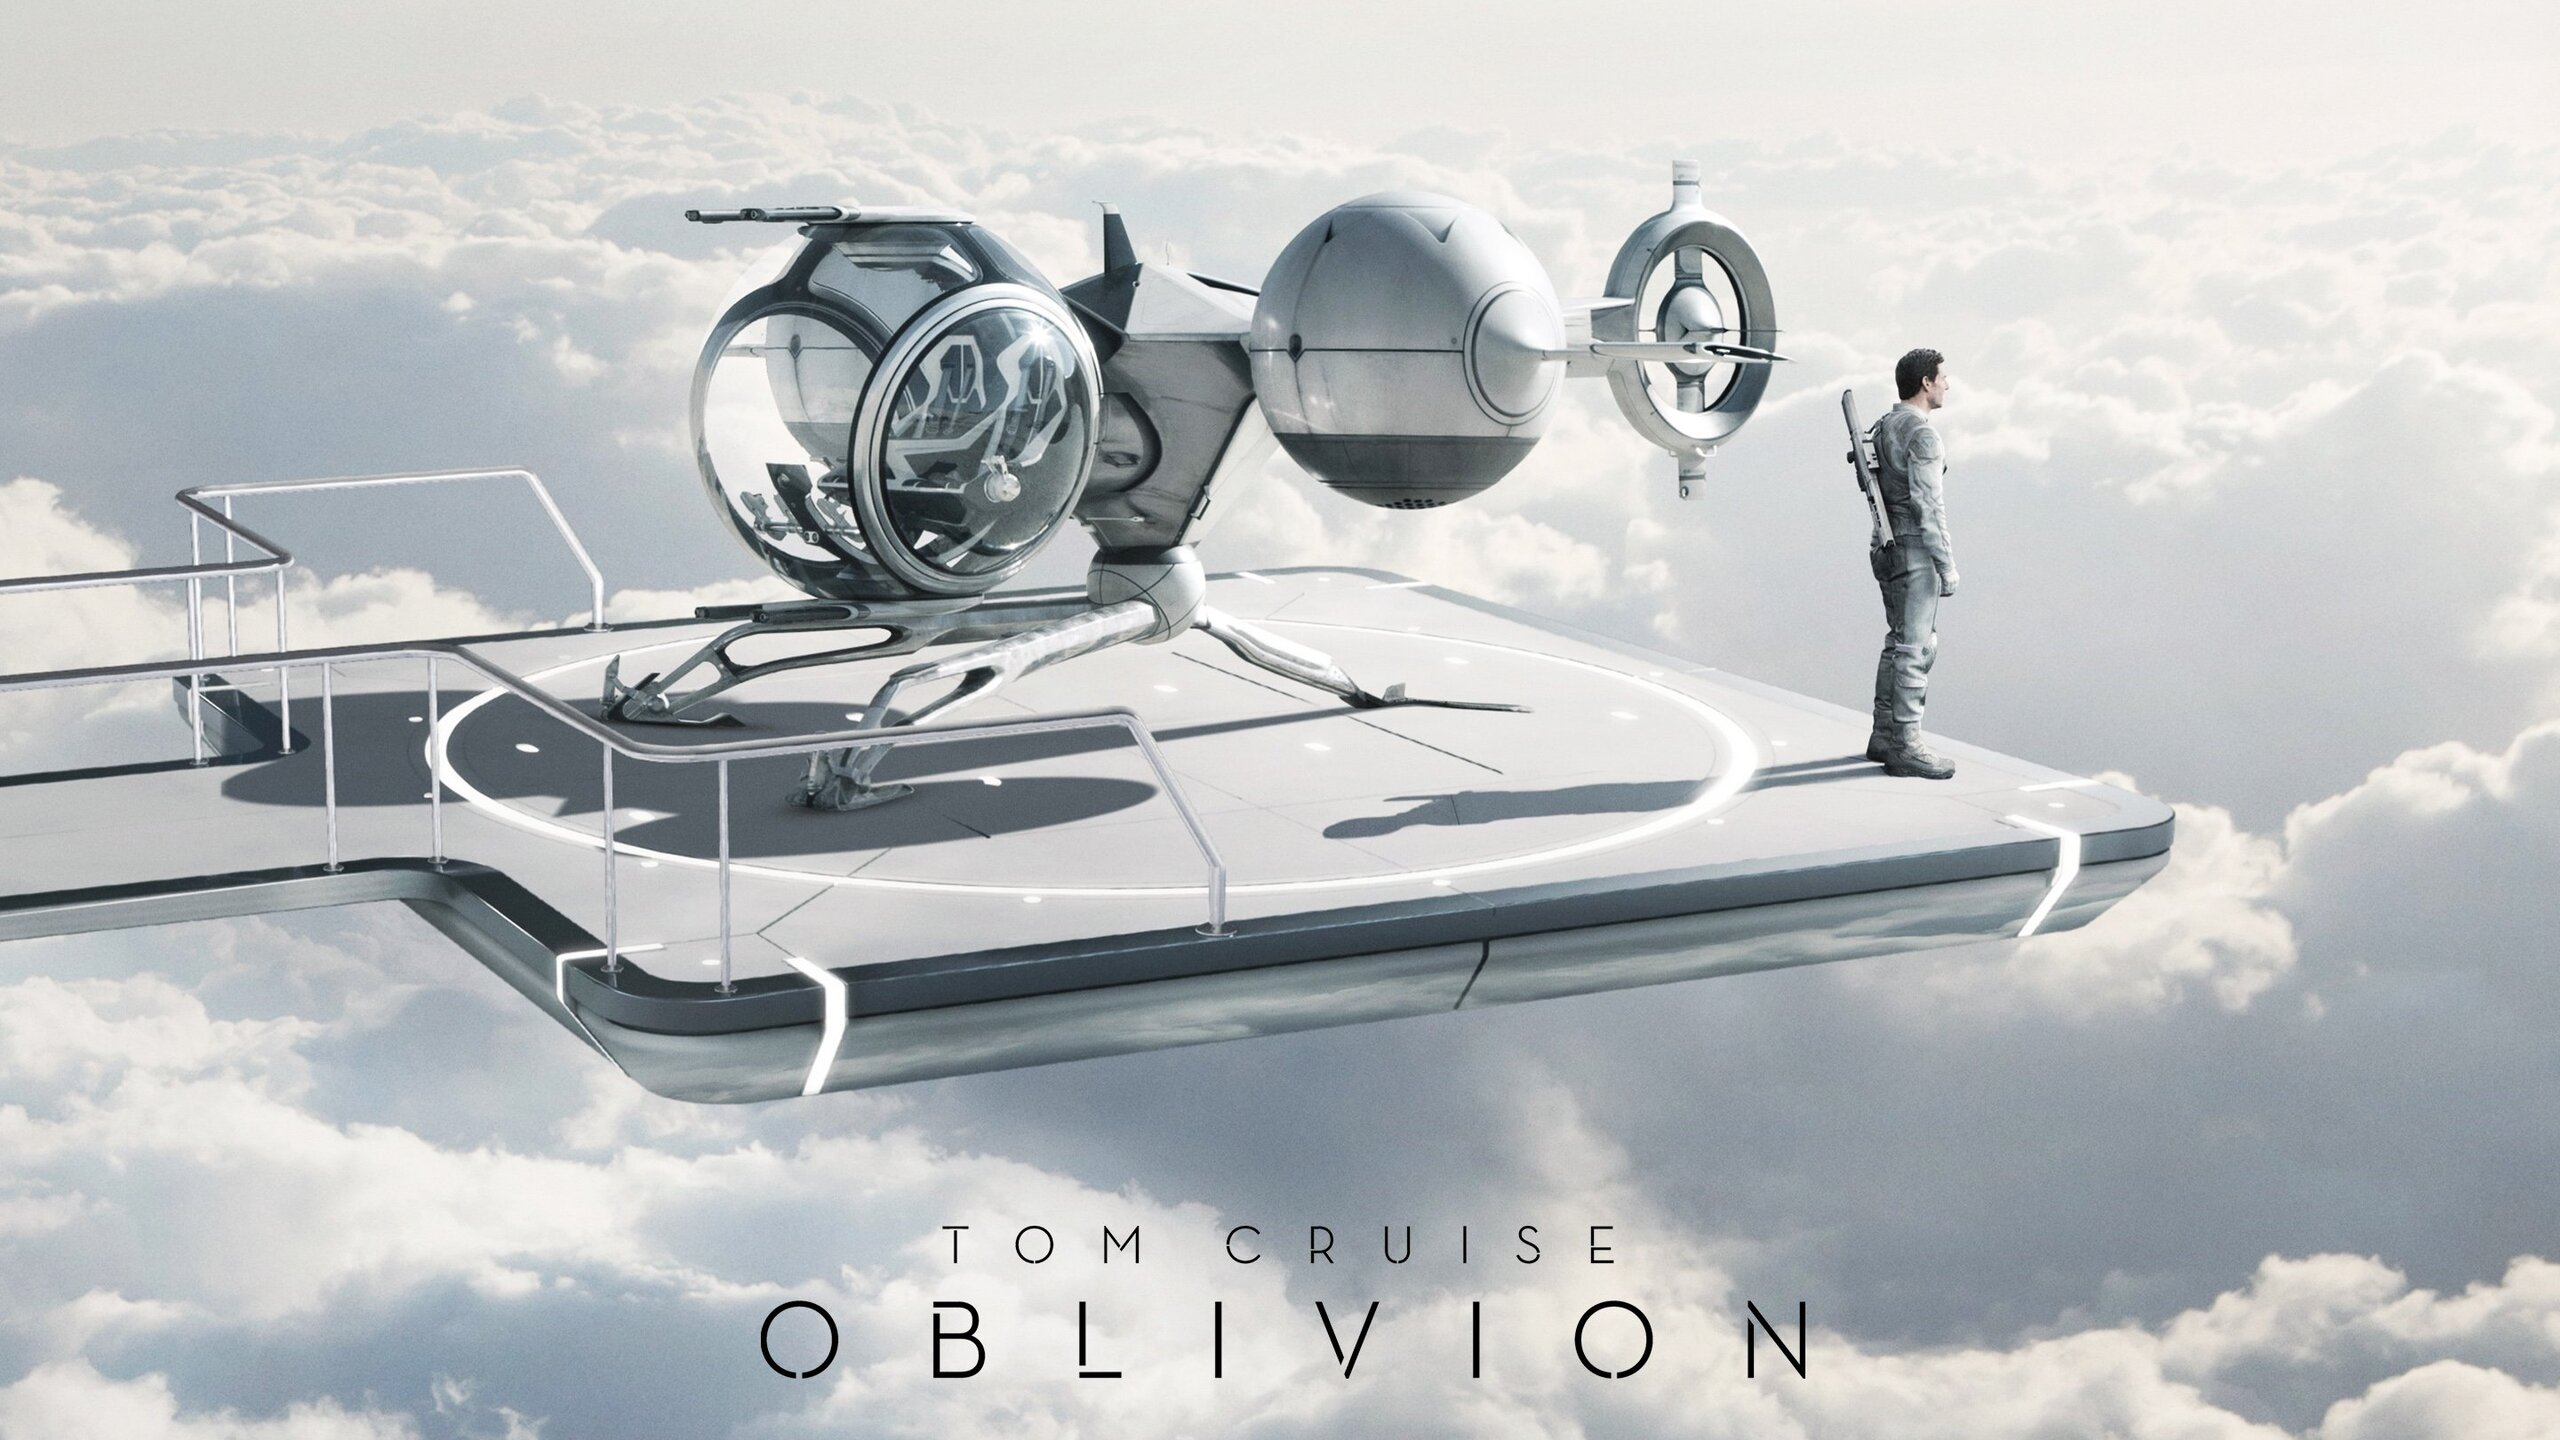 2560x1440 oblivion movie 1440p resolution hd 4k wallpapers, images